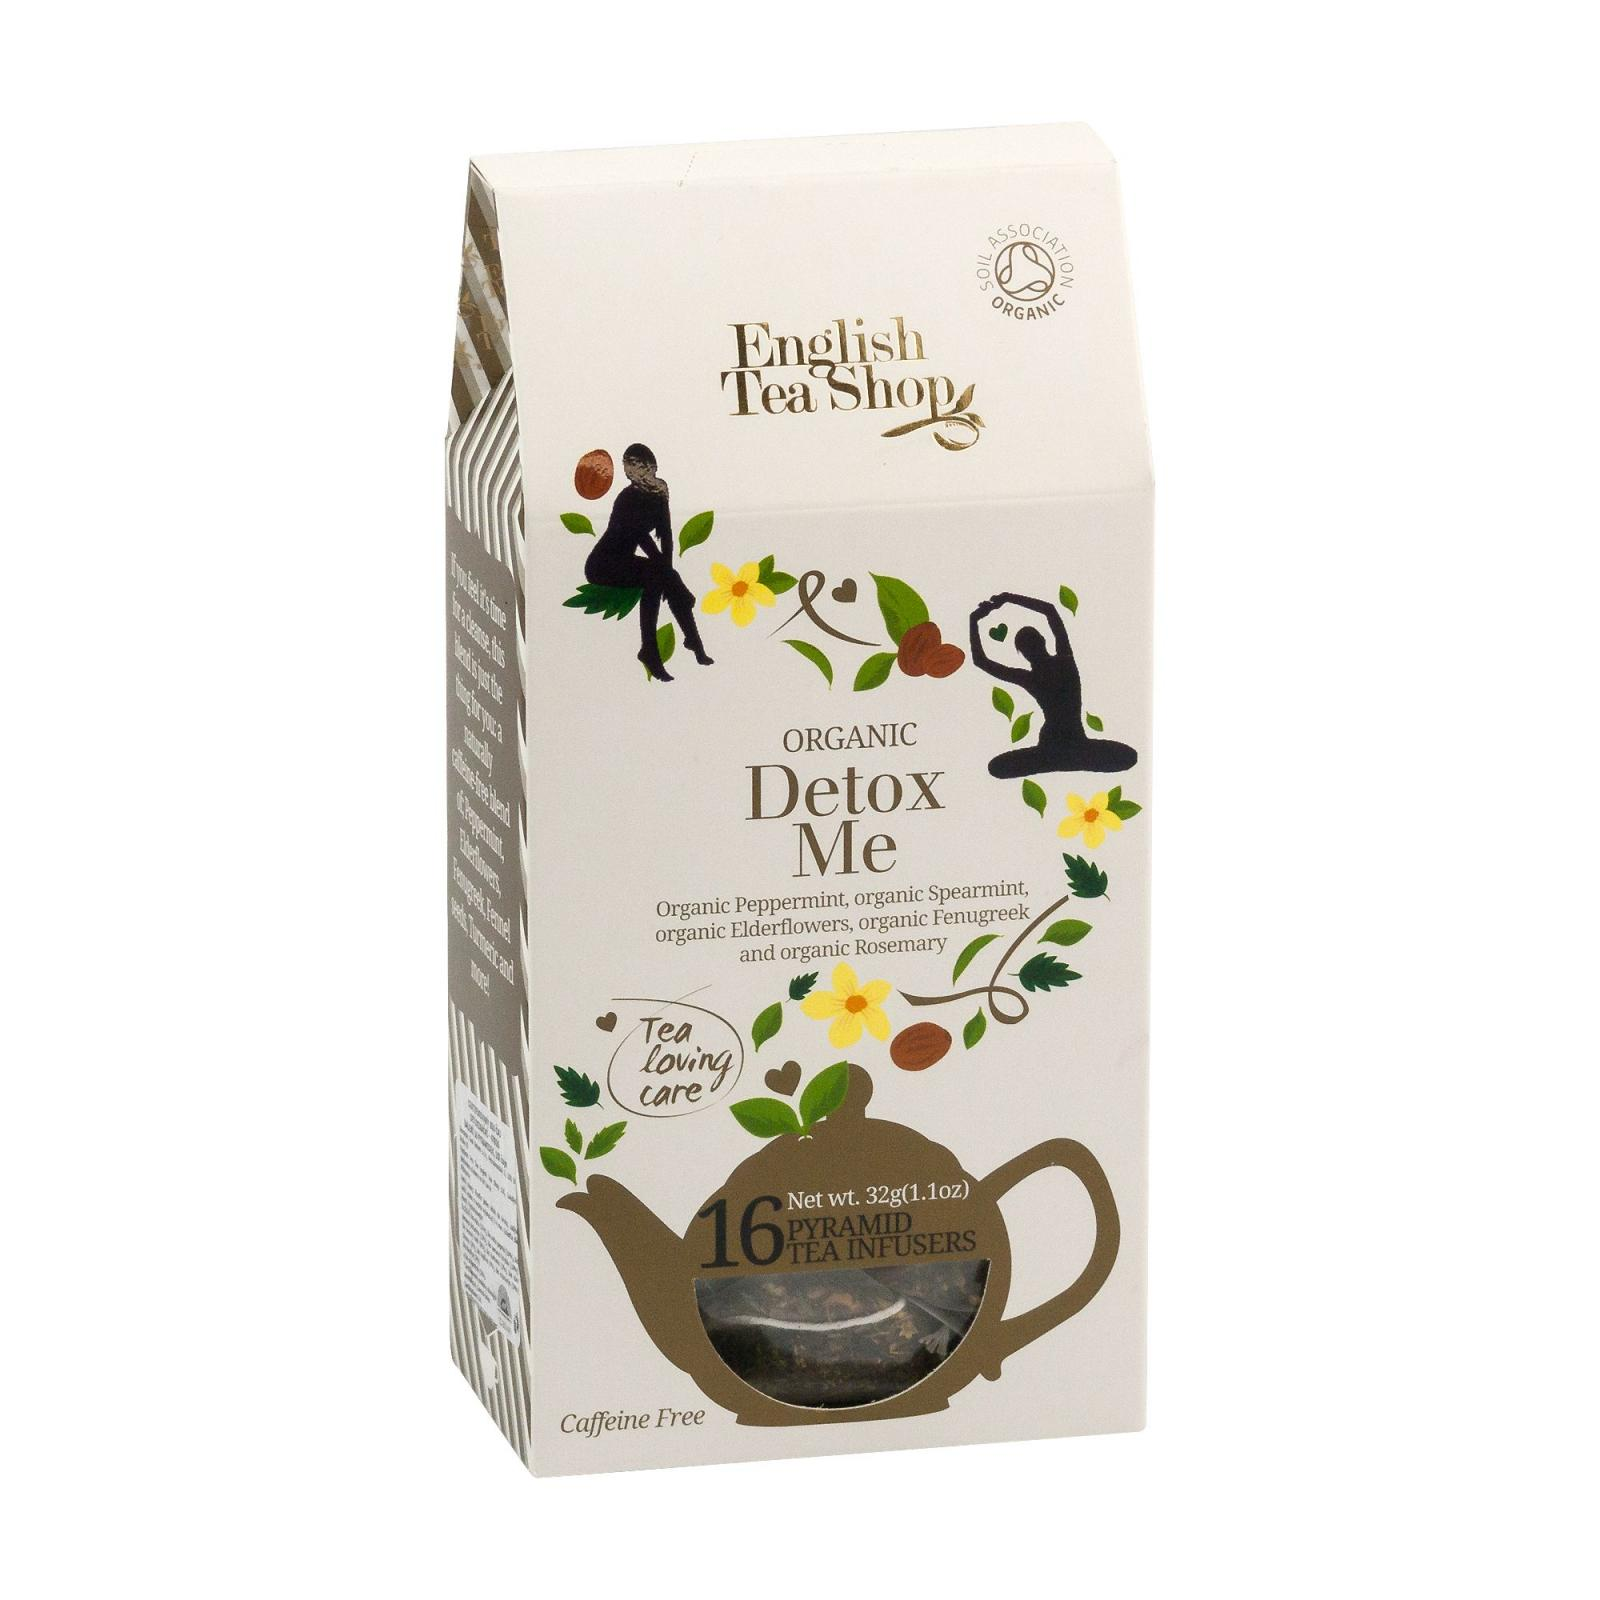 English Tea Shop Čaj Detox Me 16 ks, 32 g